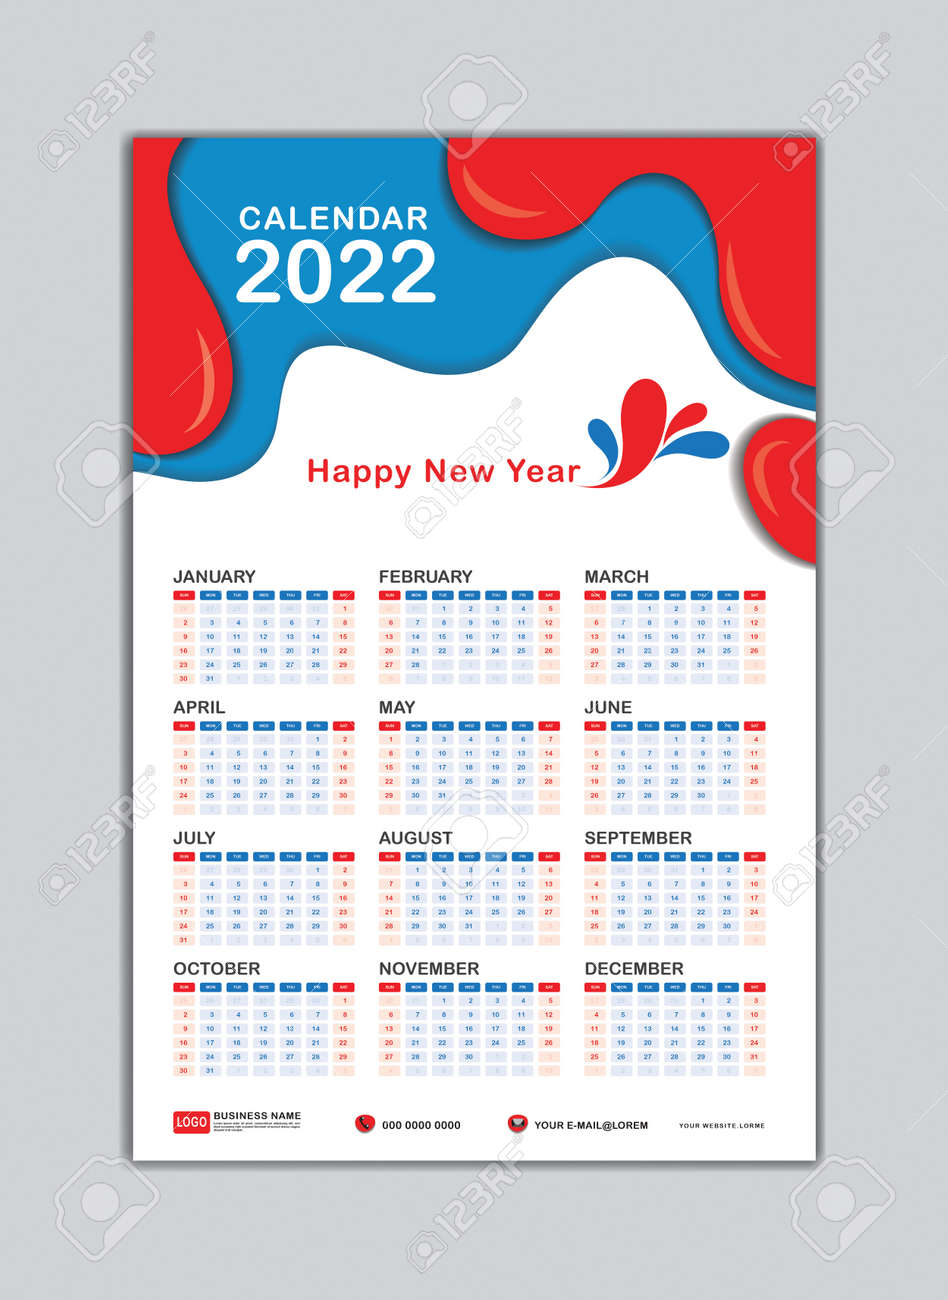 Free 2022 Wall Calendar By Mail.Wall Calendar 2022 Template Desk Calendar 2022 Template Calendar Royalty Free Cliparts Vectors And Stock Illustration Image 160899451